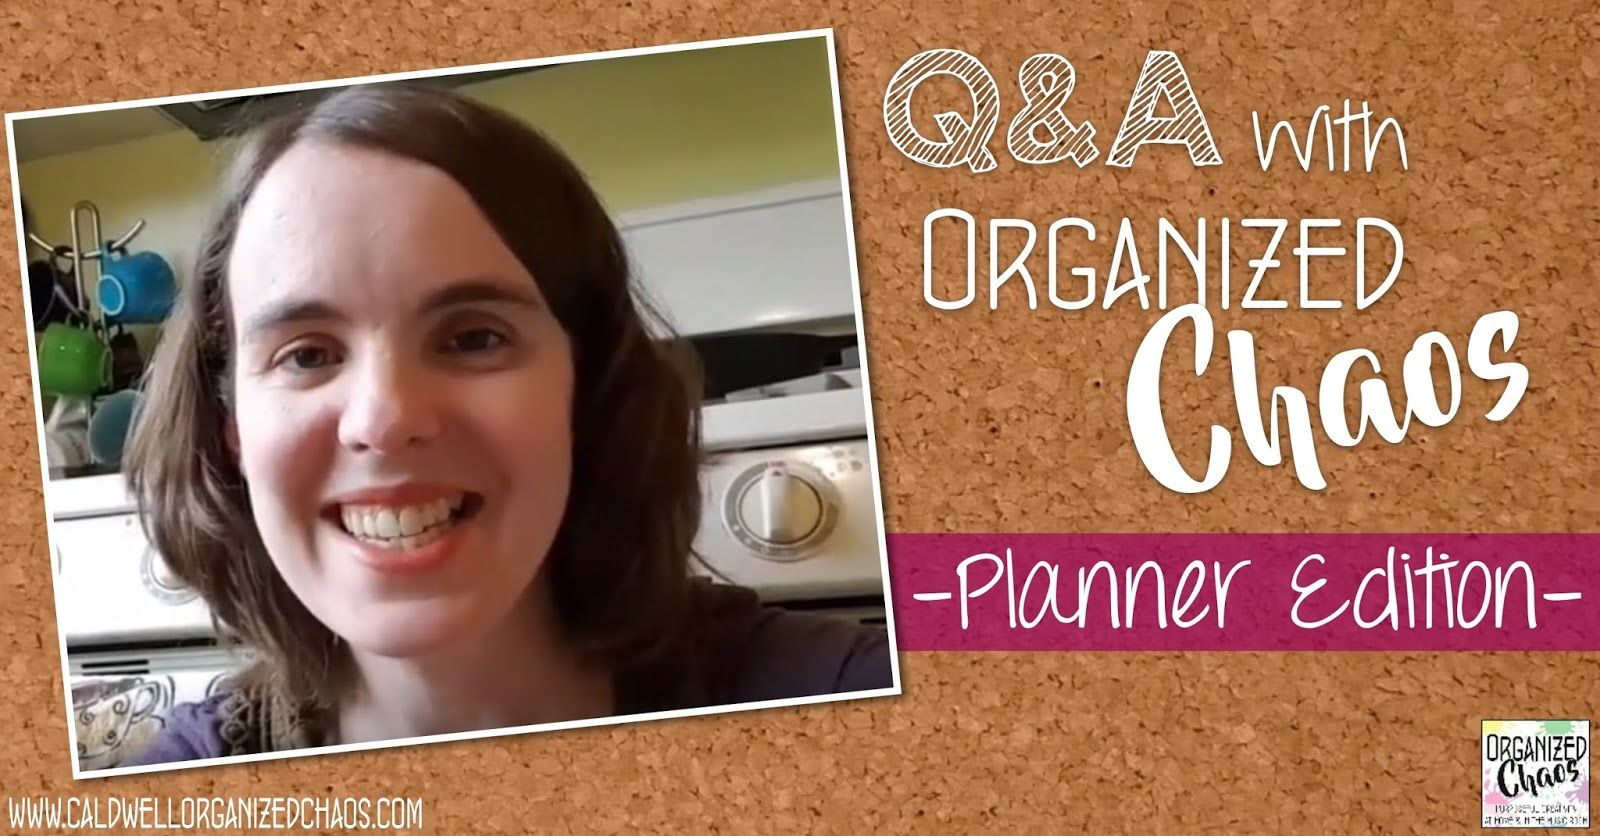 Q Amp A Planner Edition With Images